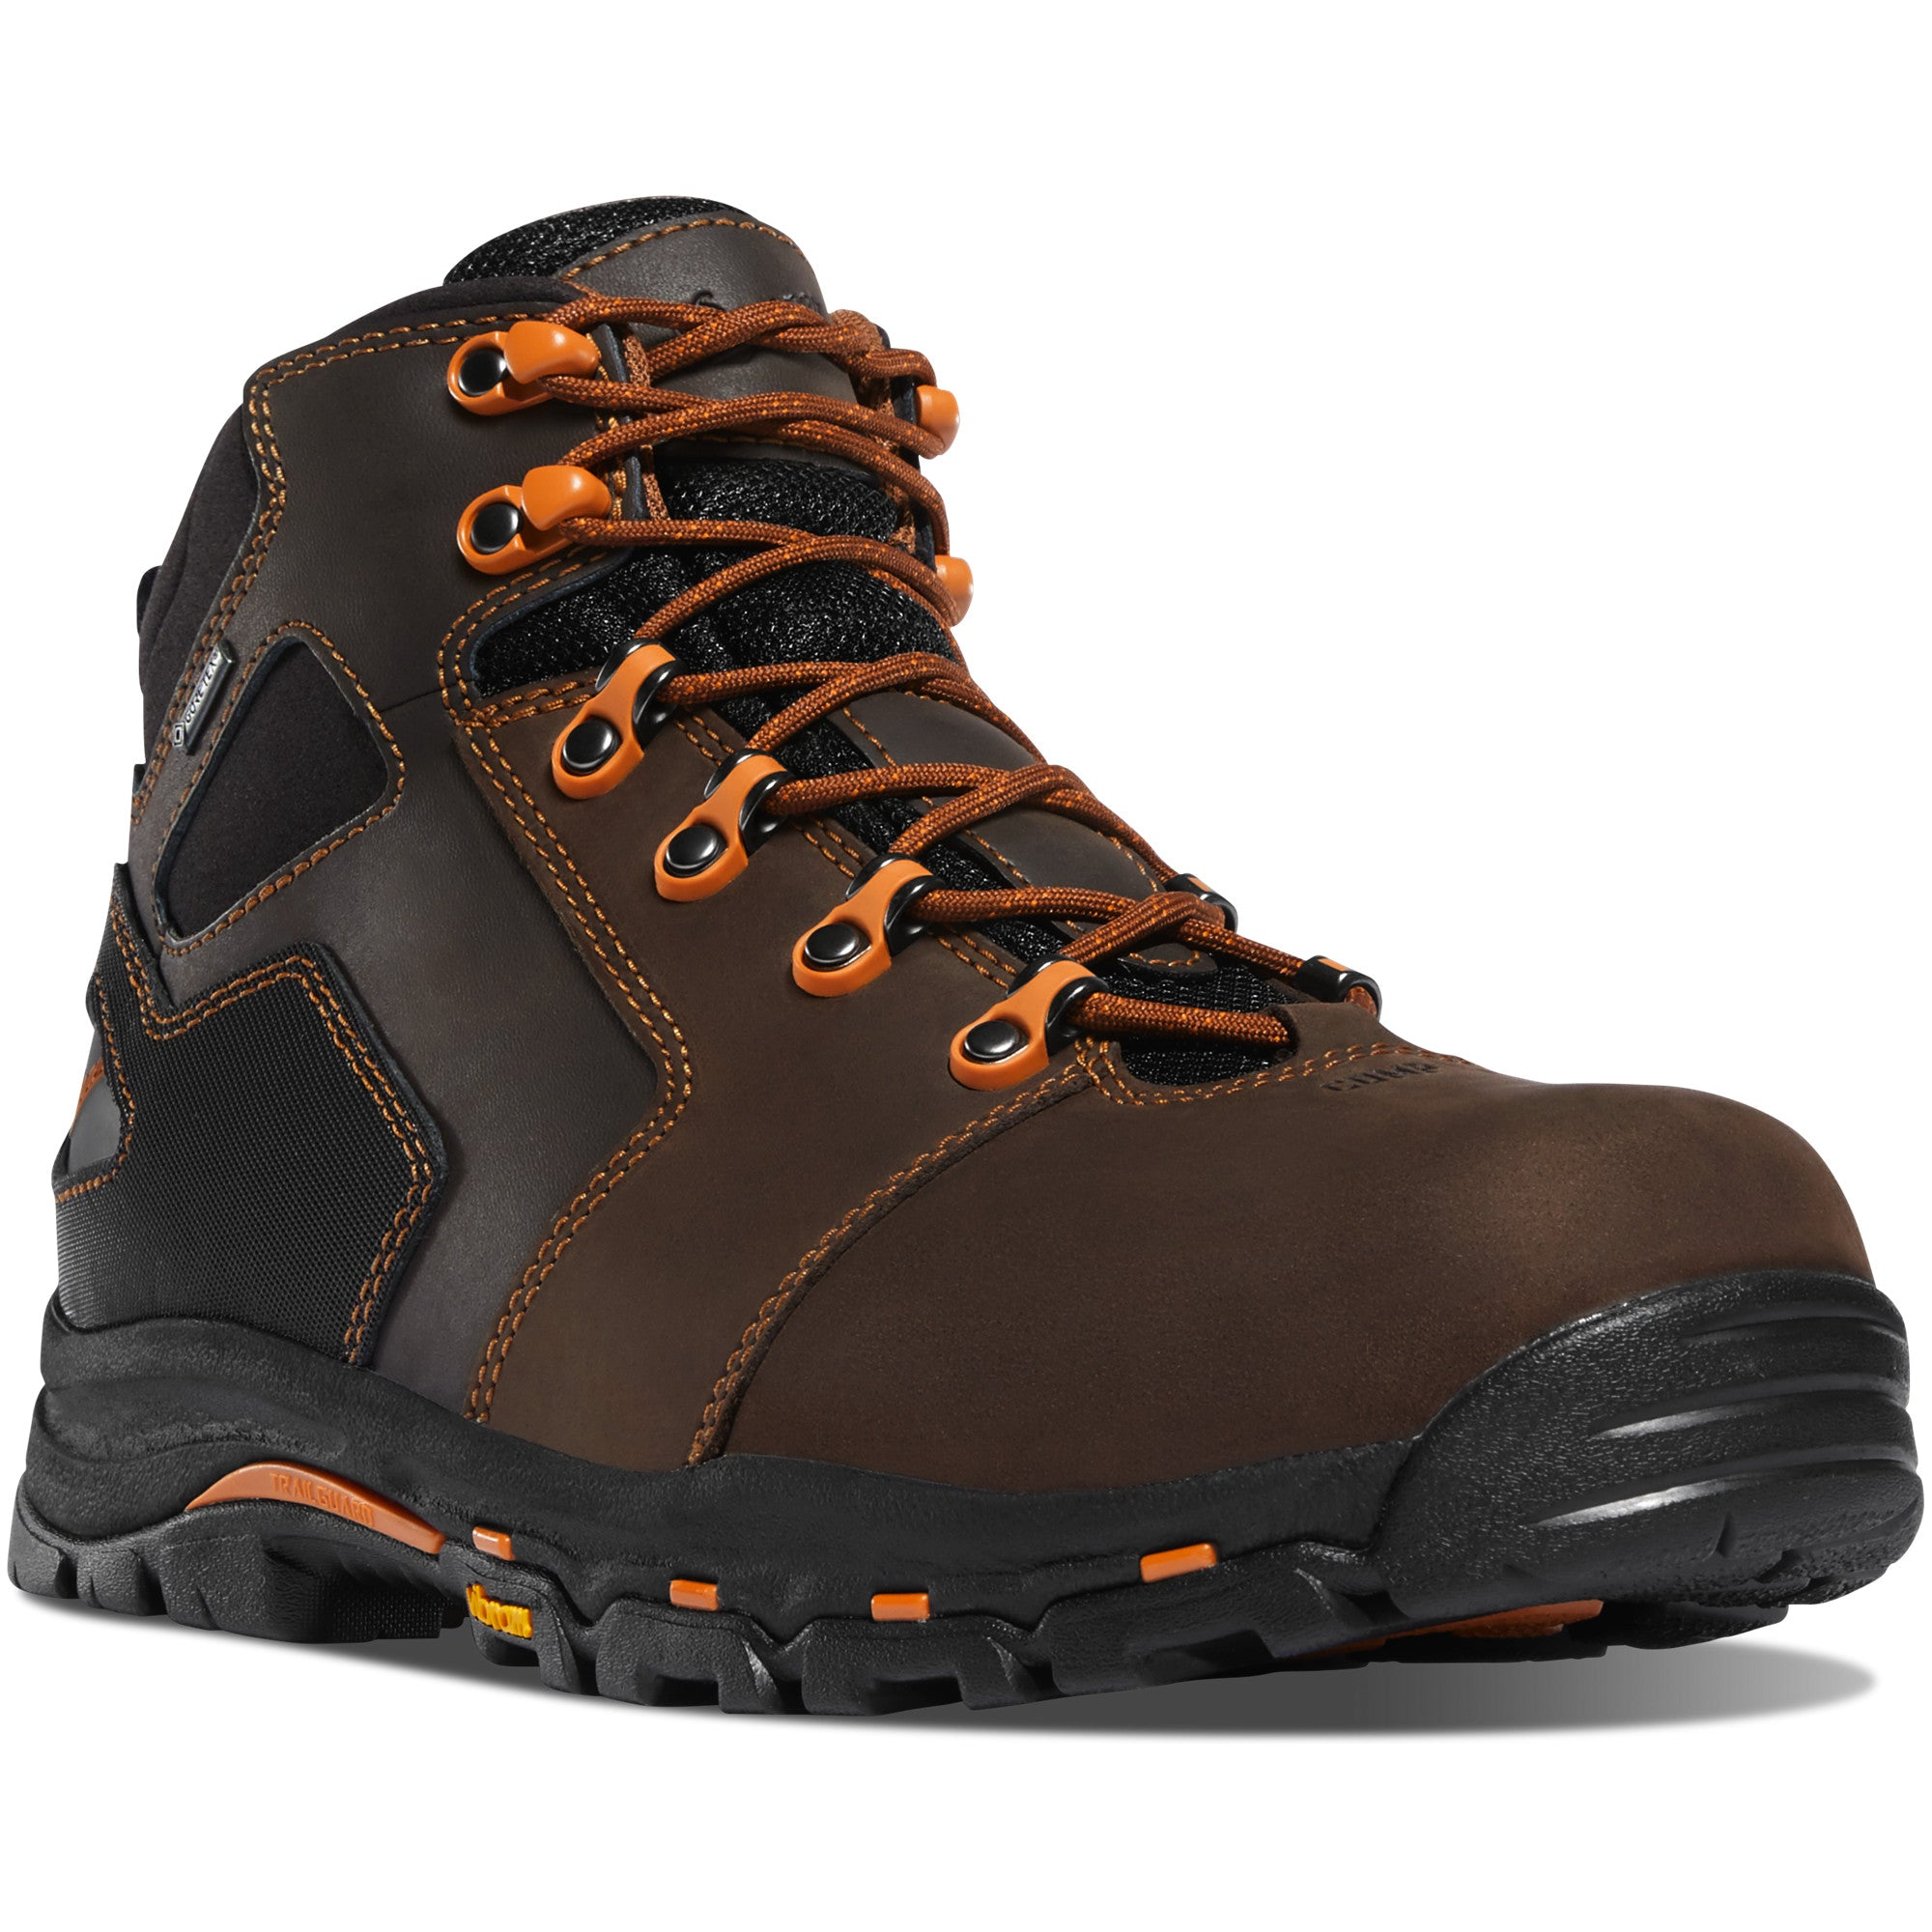 "Danner Vicious 4.5"" Men's Boot 13858"